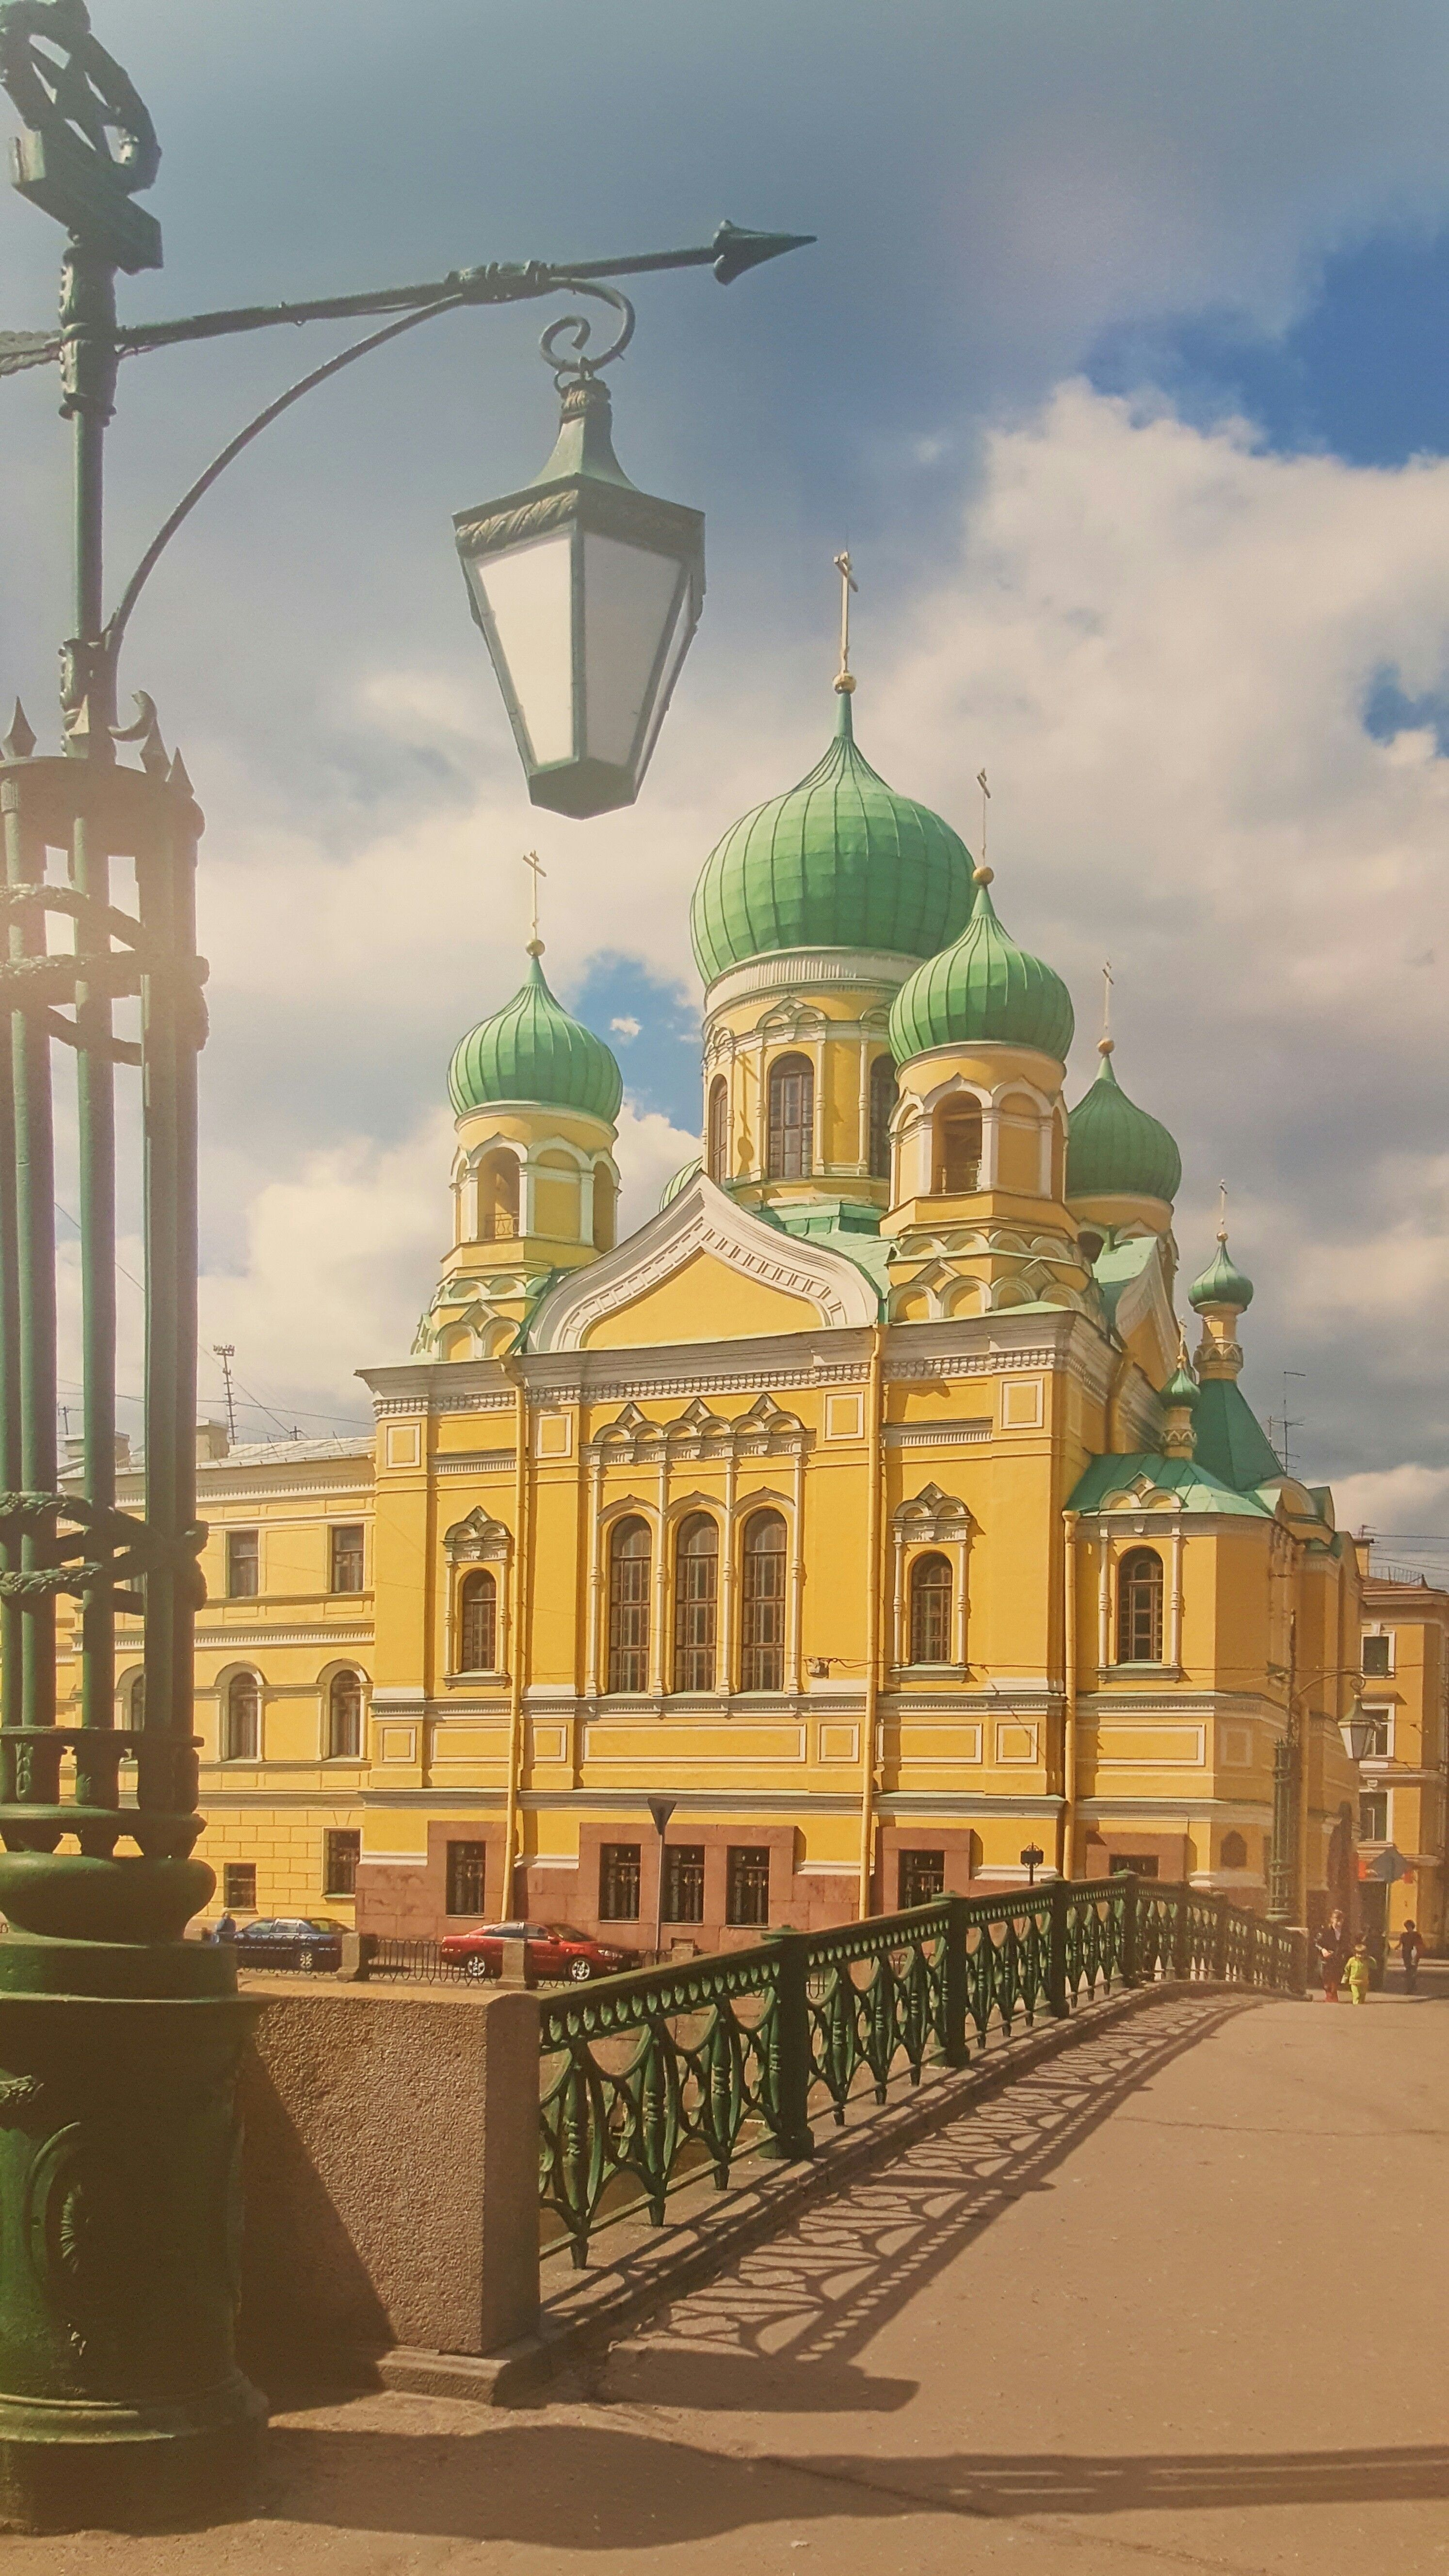 Private Tour Guides from www.pg.world can make a special tours to Russian orthodox churches in St.Petersburg